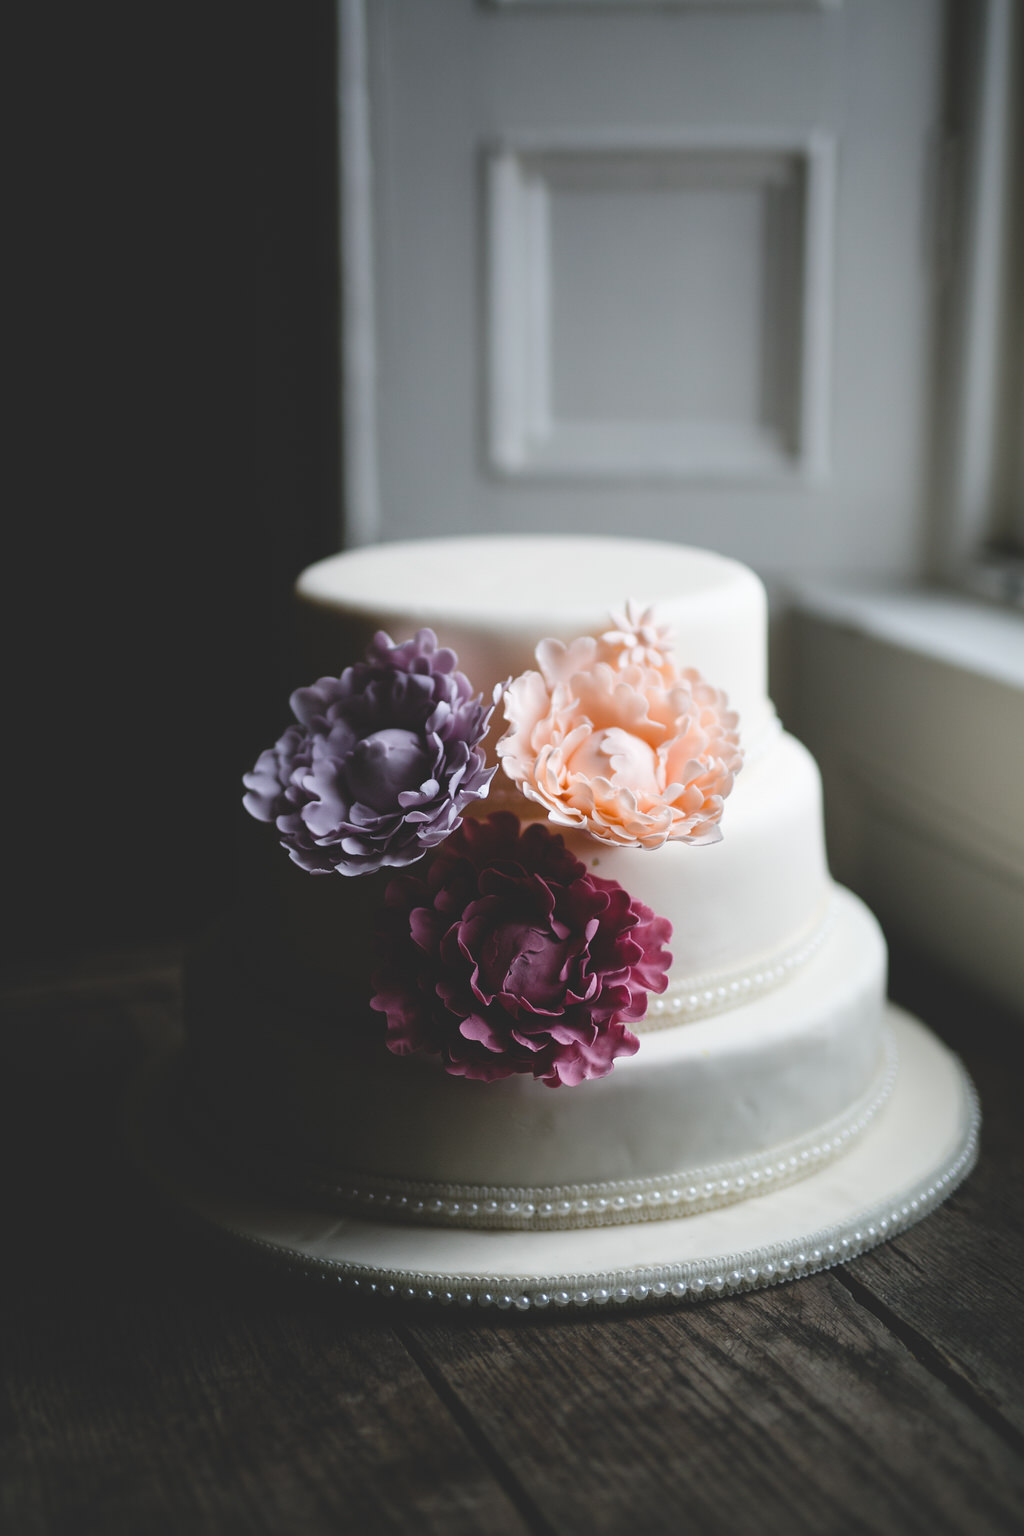 Simple, stylish & elegant wedding cake in white with iced flower decorations